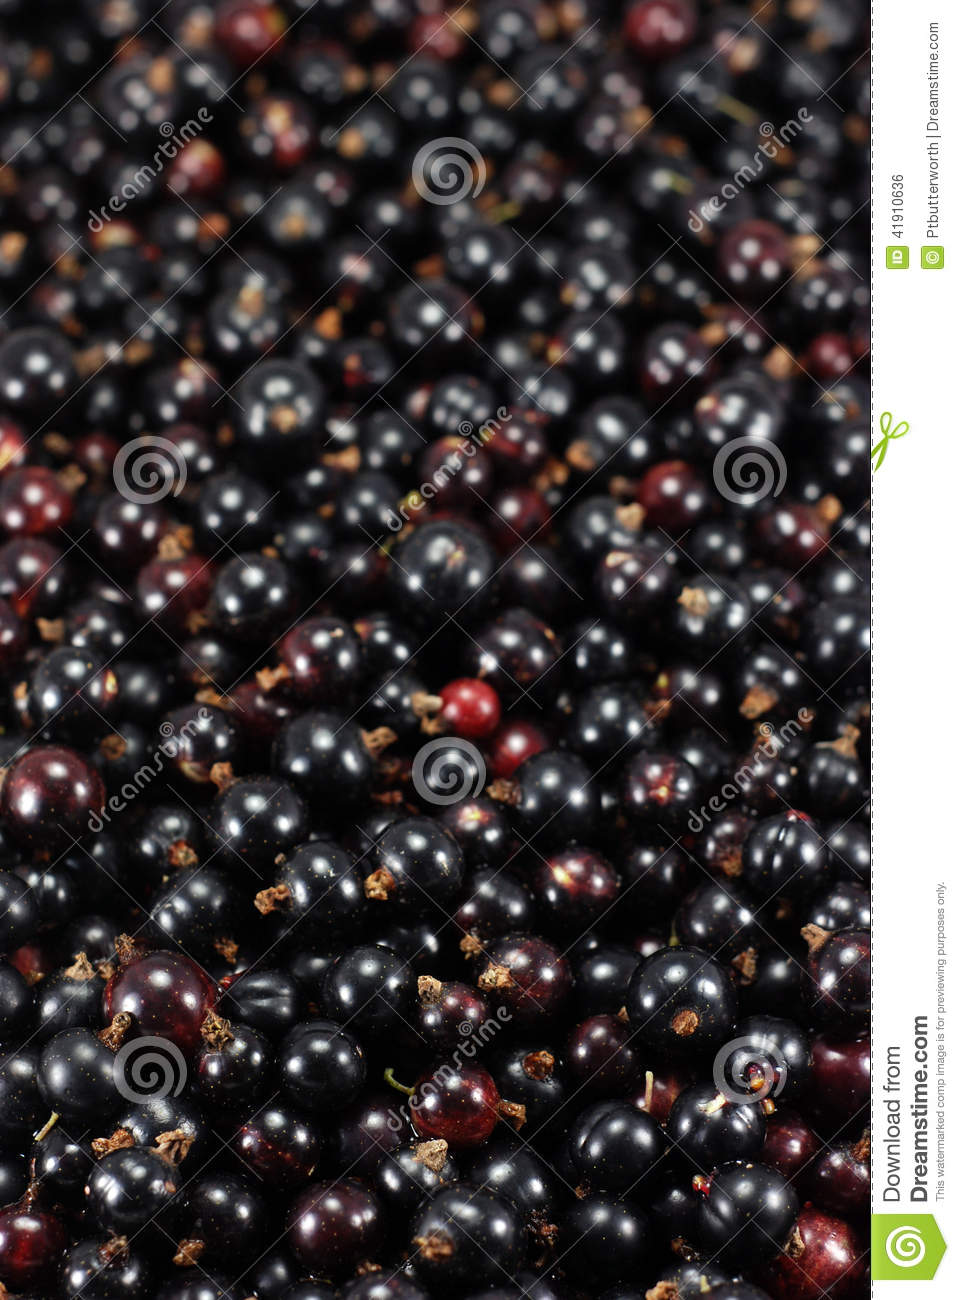 Black Currants blackcurrants